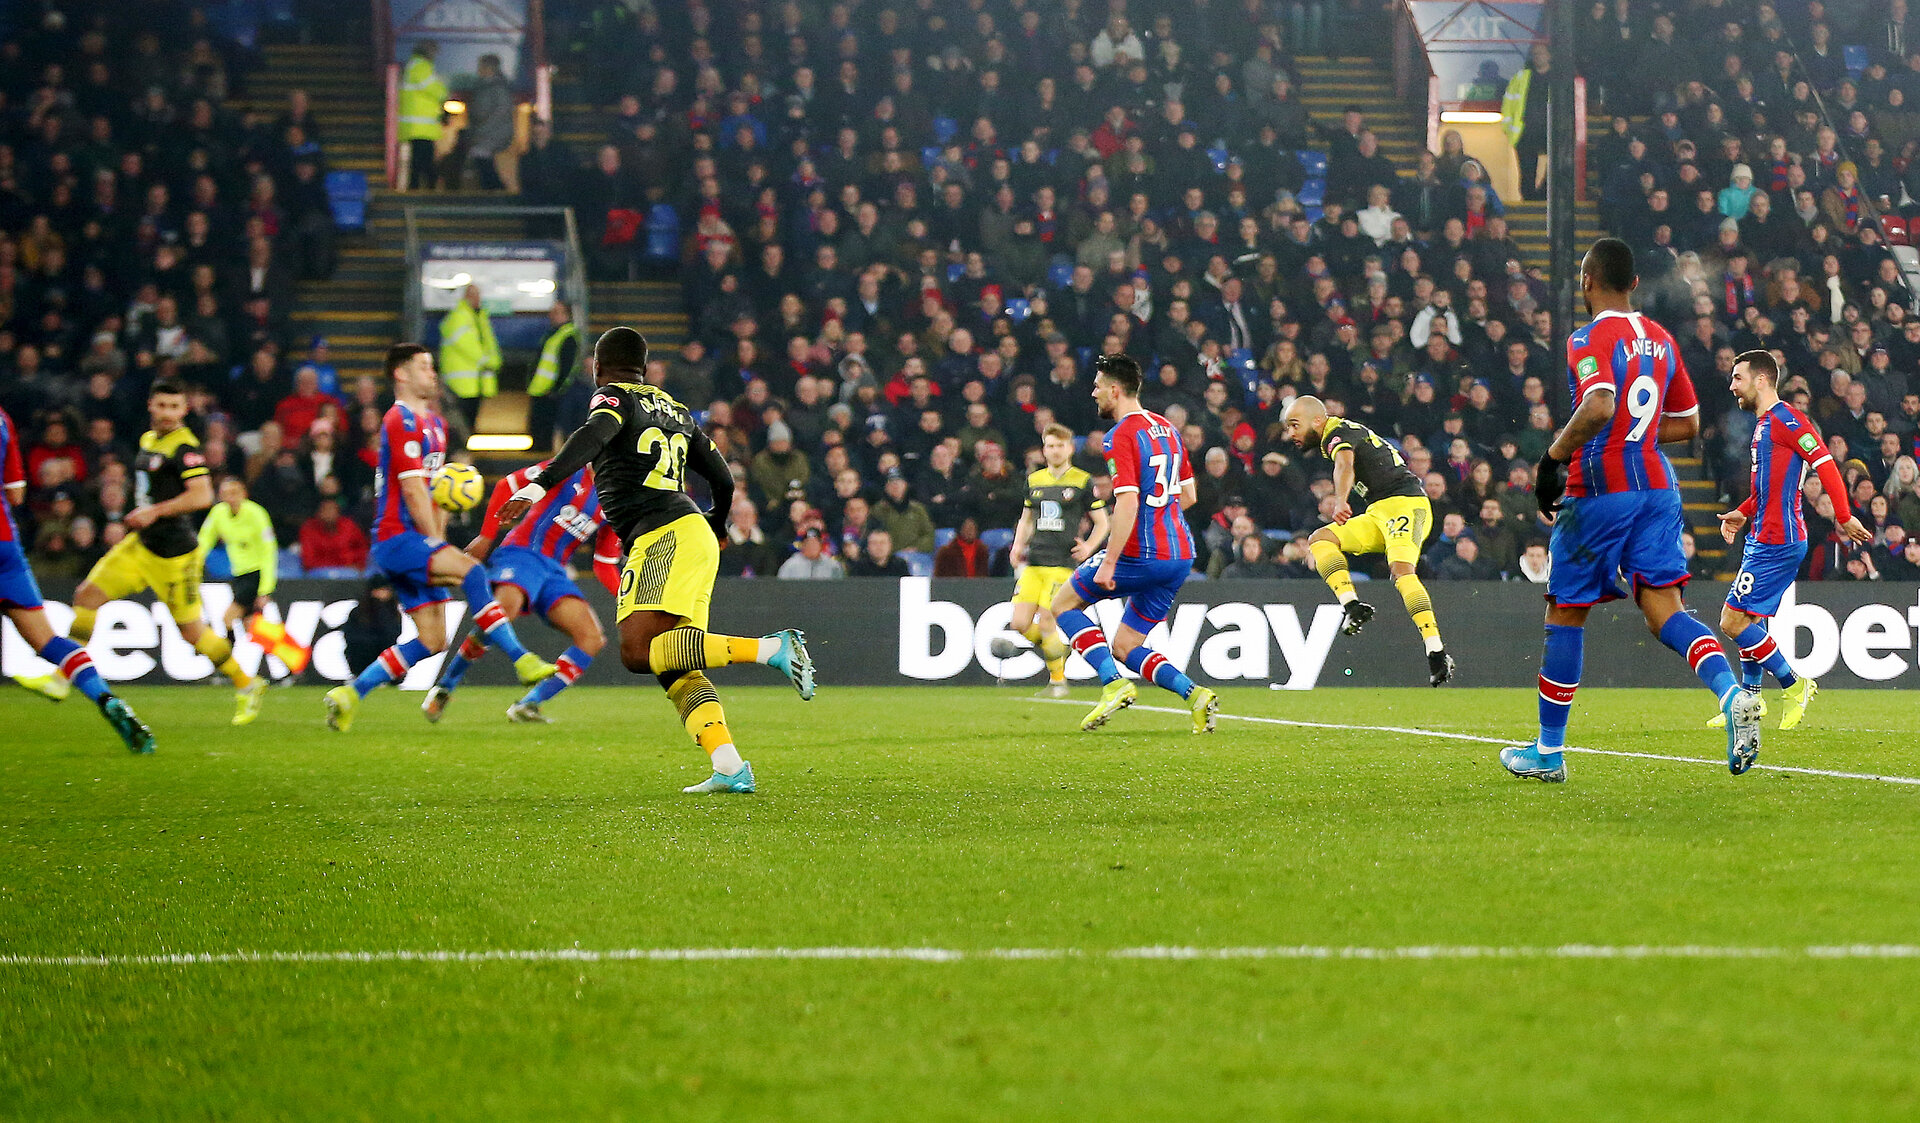 LONDON, ENGLAND - JANUARY 21: Nathan Redmond(R) of Southampton shoots and scores during the Premier League match between Crystal Palace and Southampton FC at Selhurst Park on January 21, 2020 in London, United Kingdom. (Photo by Matt Watson/Southampton FC via Getty Images)